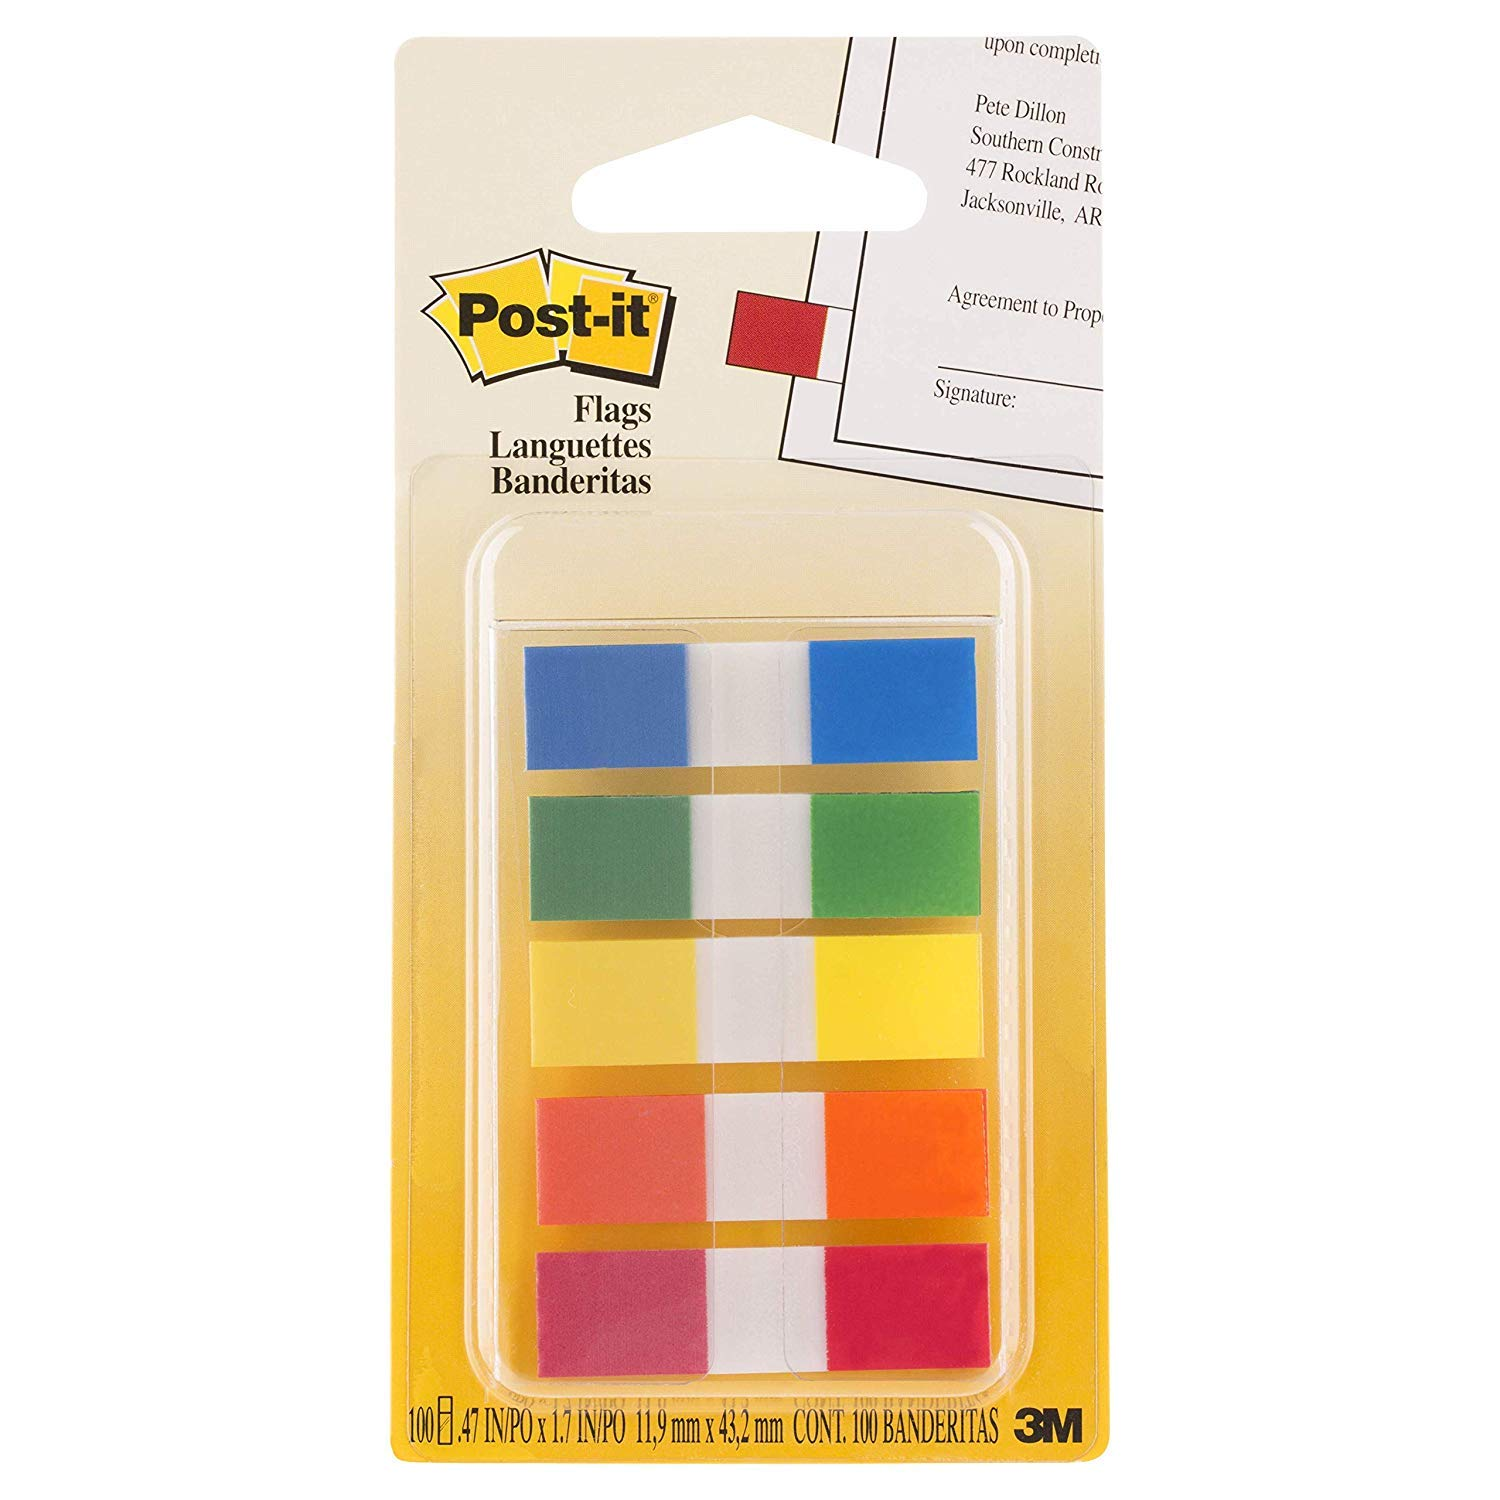 Post-it Flags with On-The-Go Dispenser, Assorted Primary Colors, 1/2-Inch Wide, 100/Dispenser, Pack of 6 by Post-it